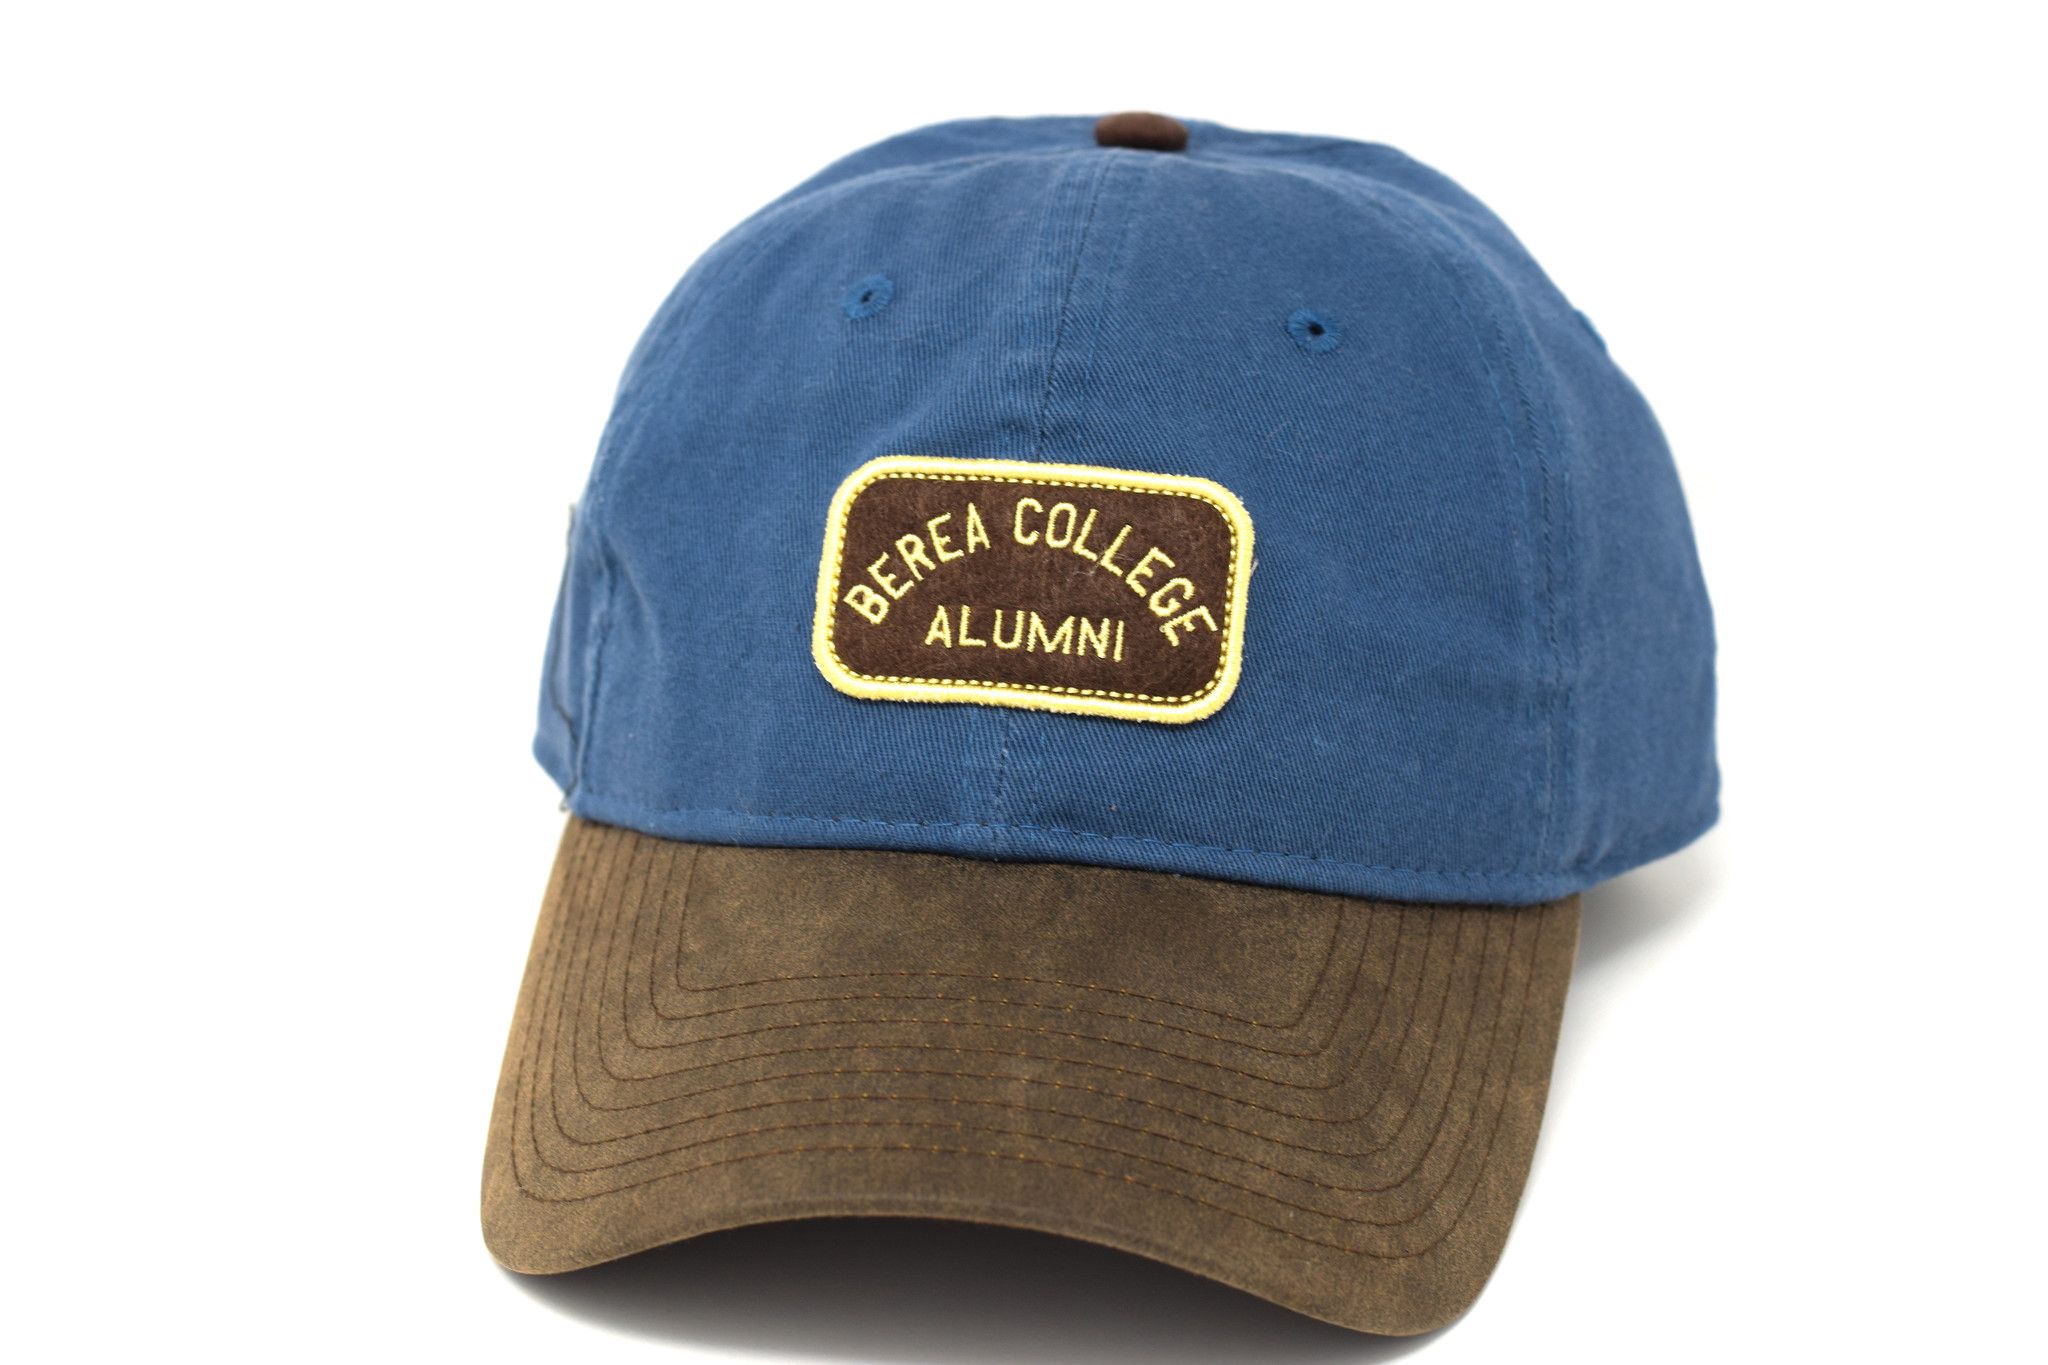 Berea College Alumni Ball Cap-1